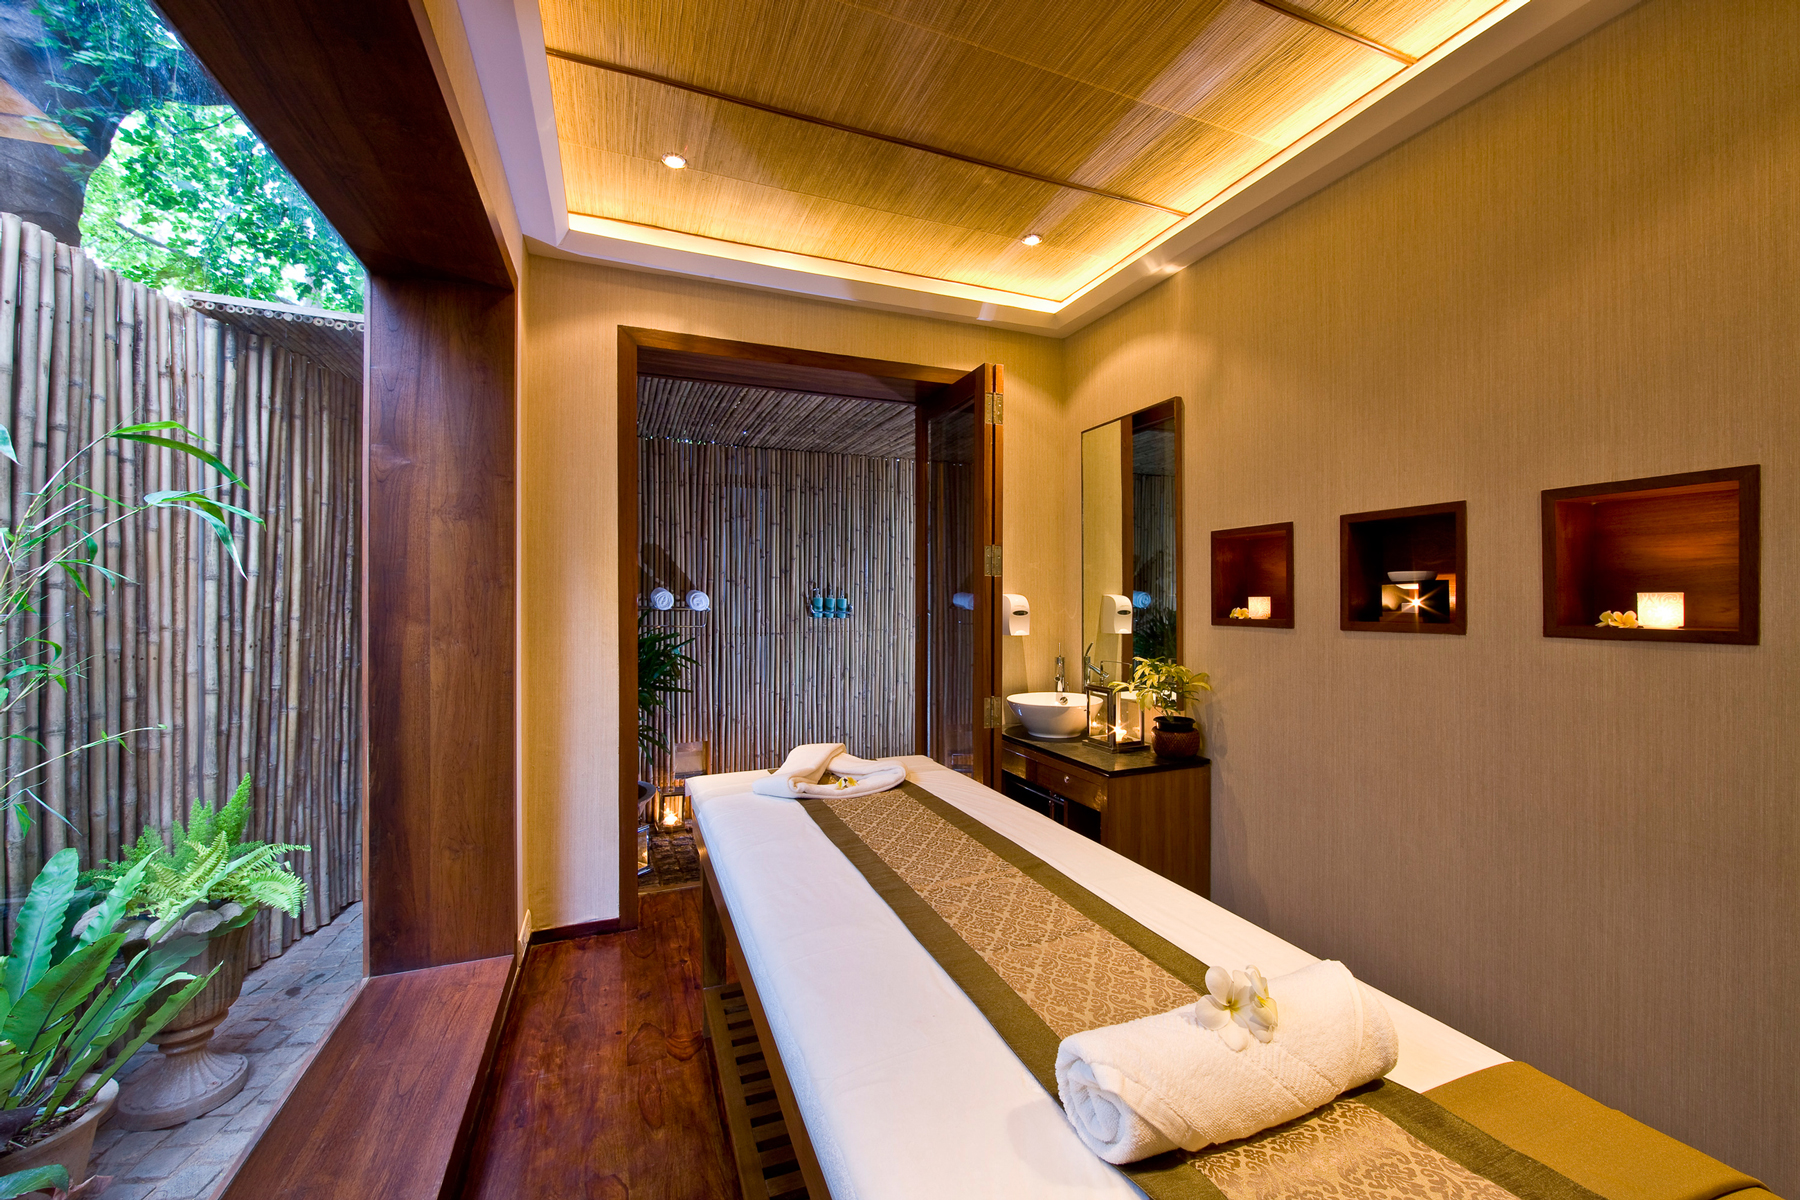 Decor aura spa design by khosla associates architecture interior - Decor Aura Spa Design By Khosla Associates Architecture Interior 5